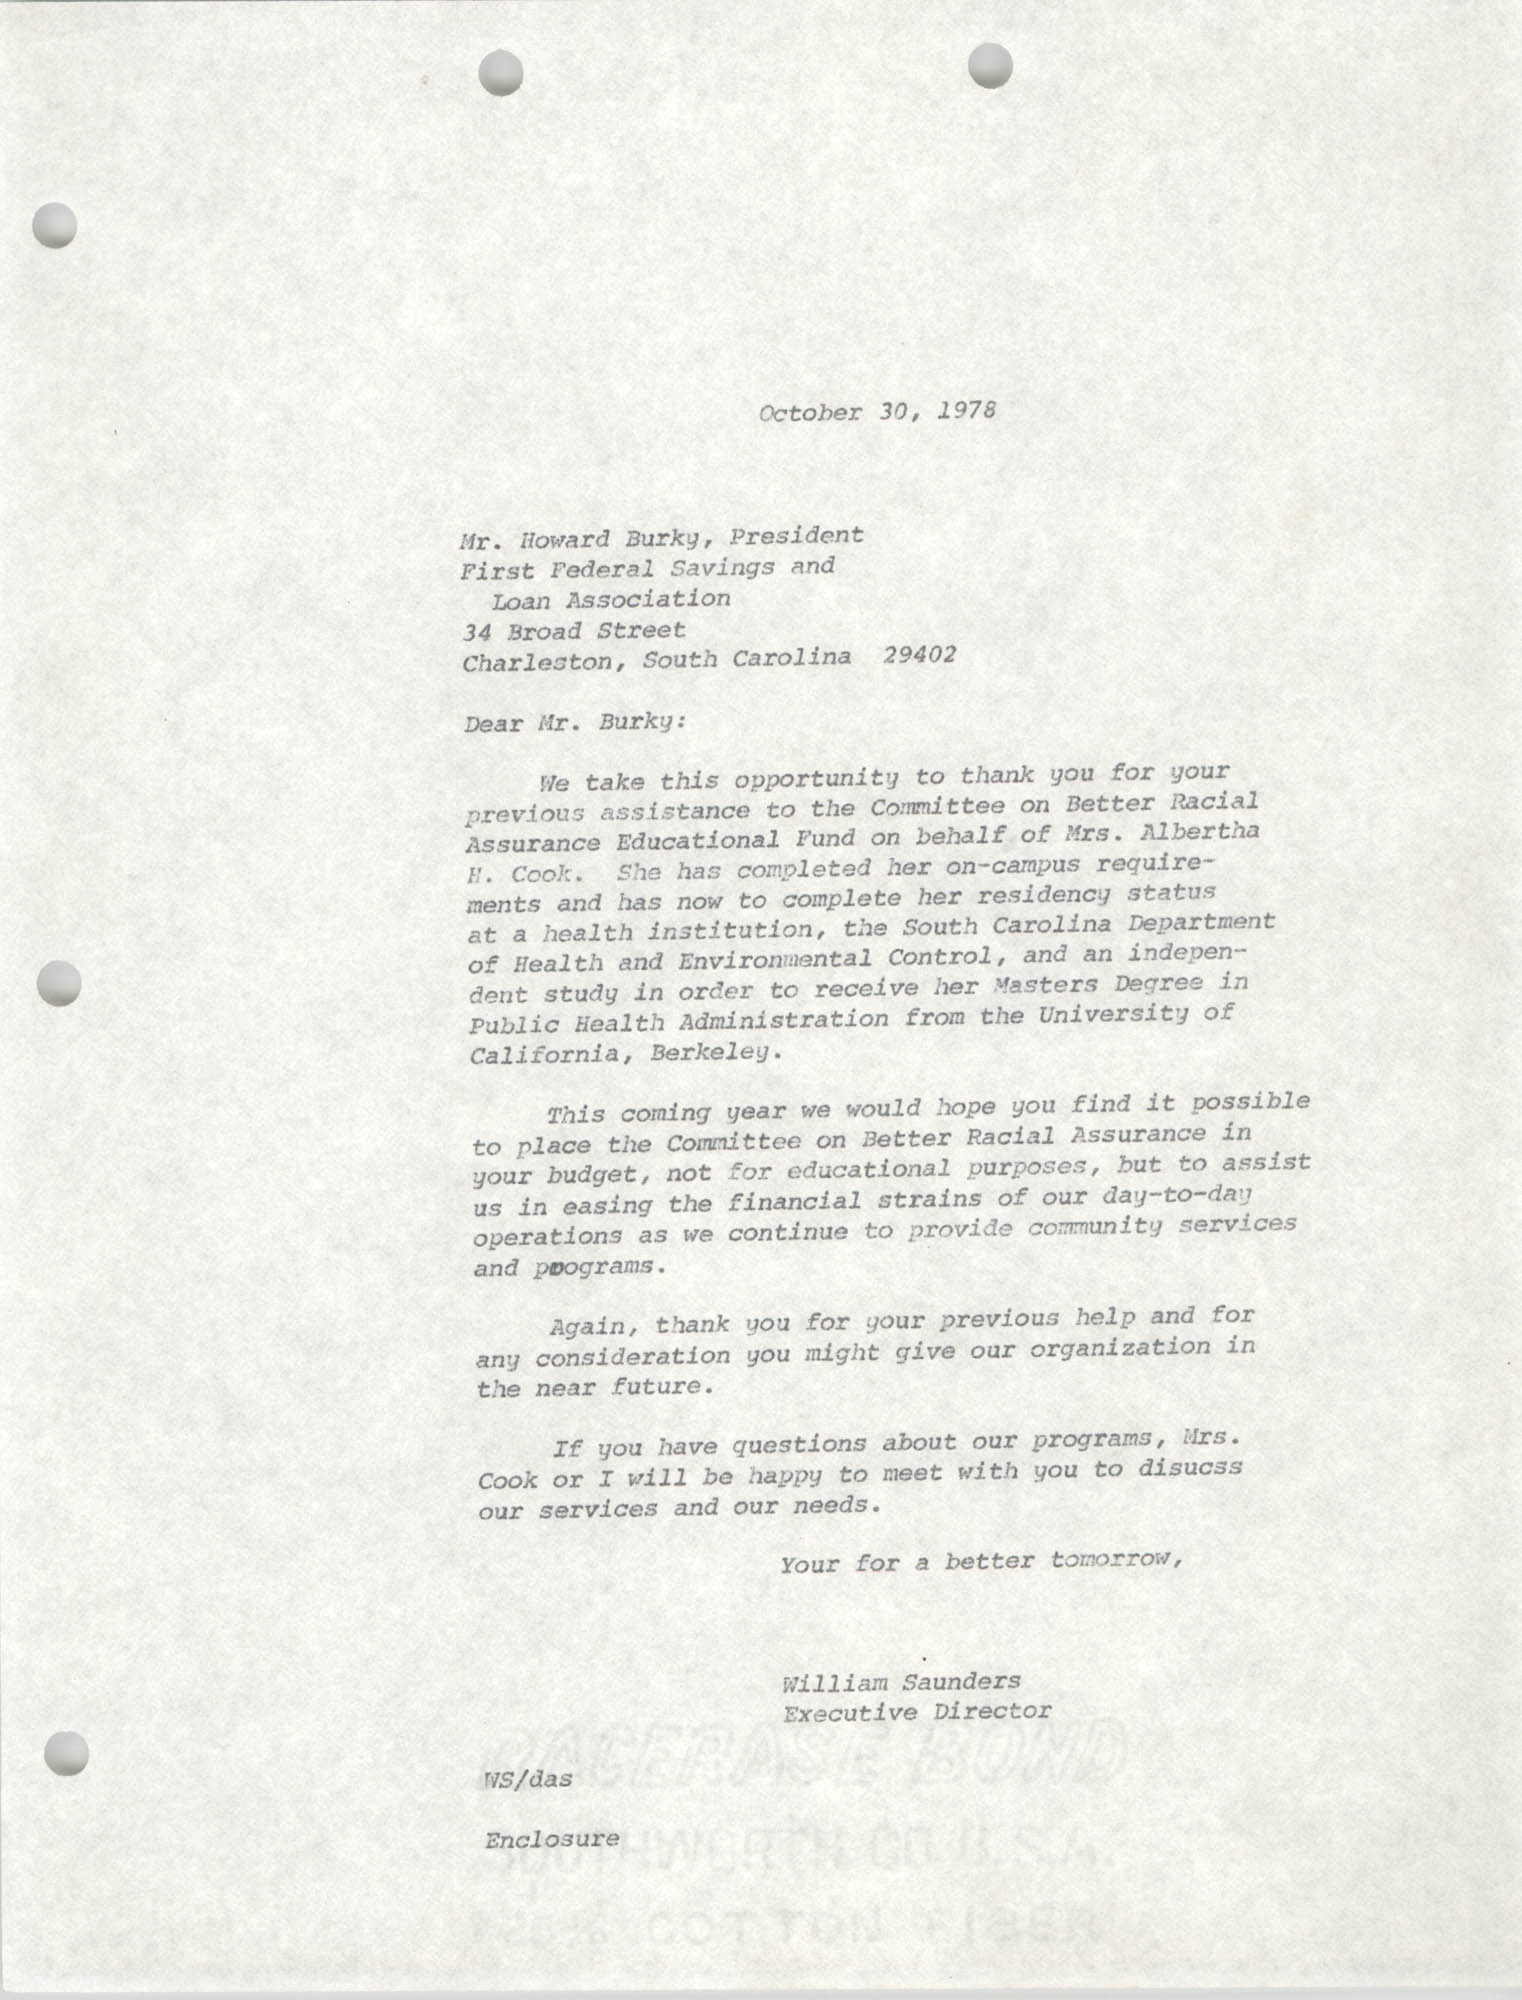 Letter from William Saunders to Howard Burky, October 30, 1978